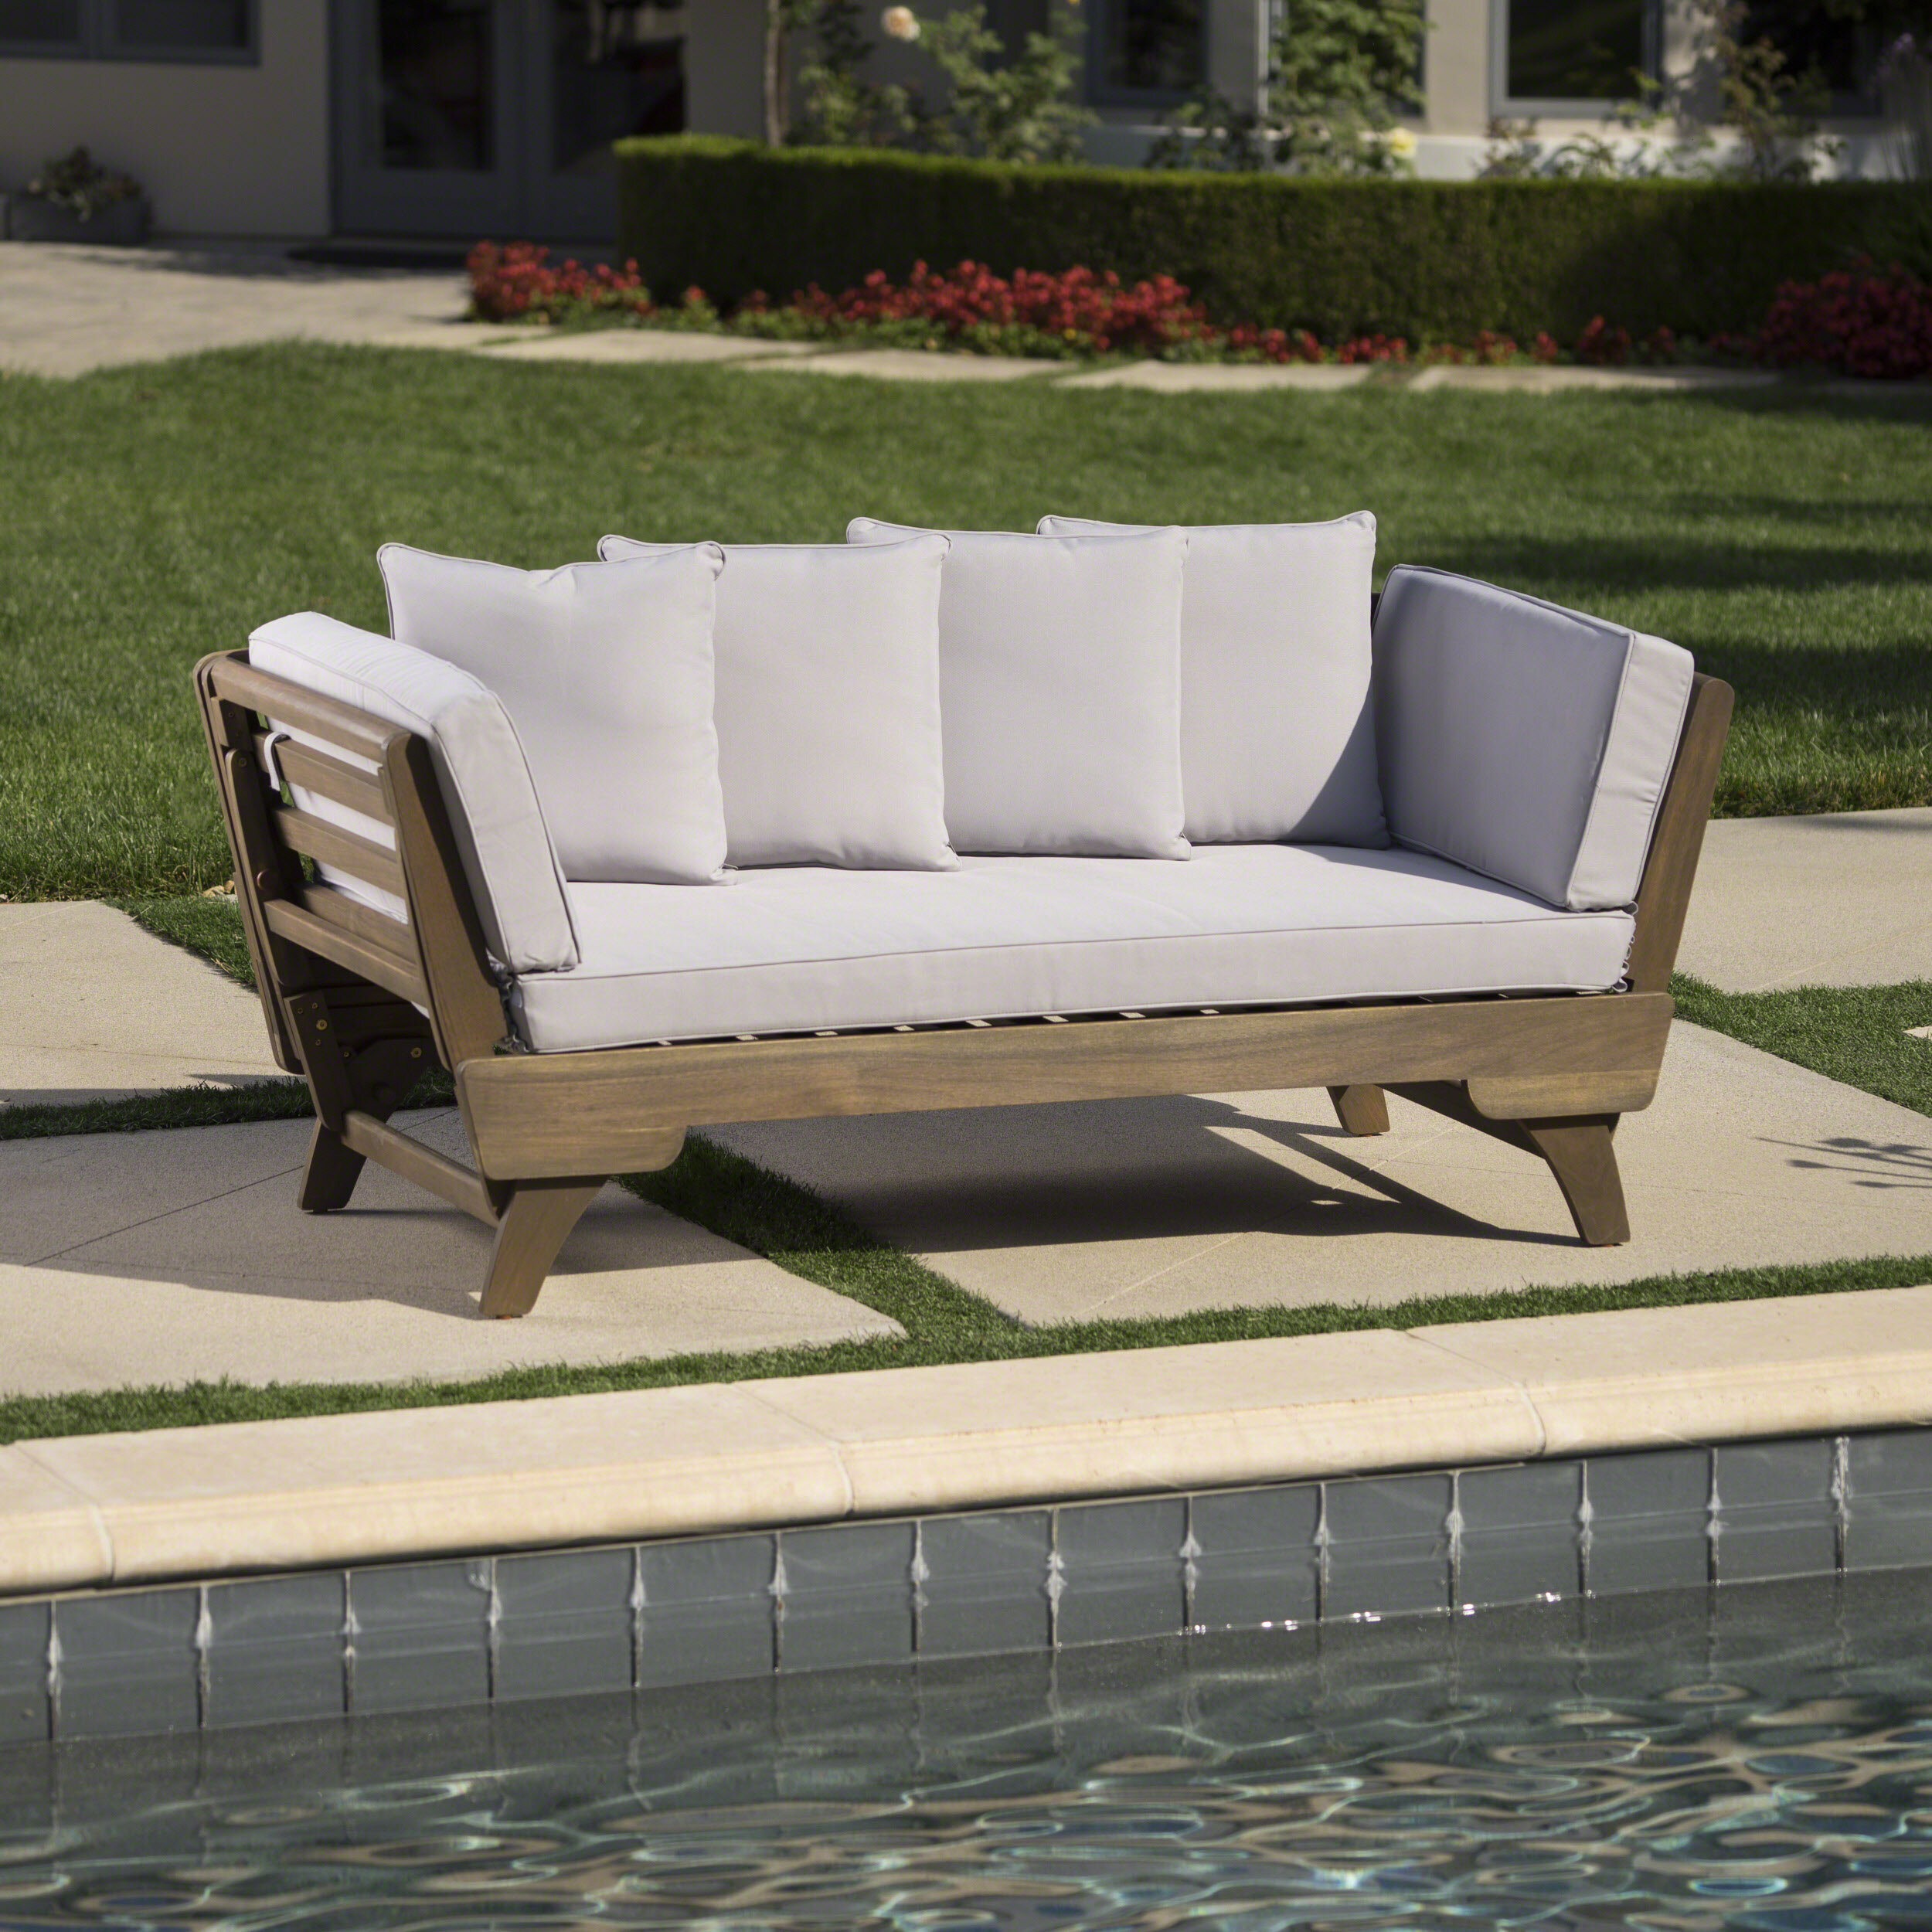 Union rustic ellanti patio daybed with cushions reviews wayfair